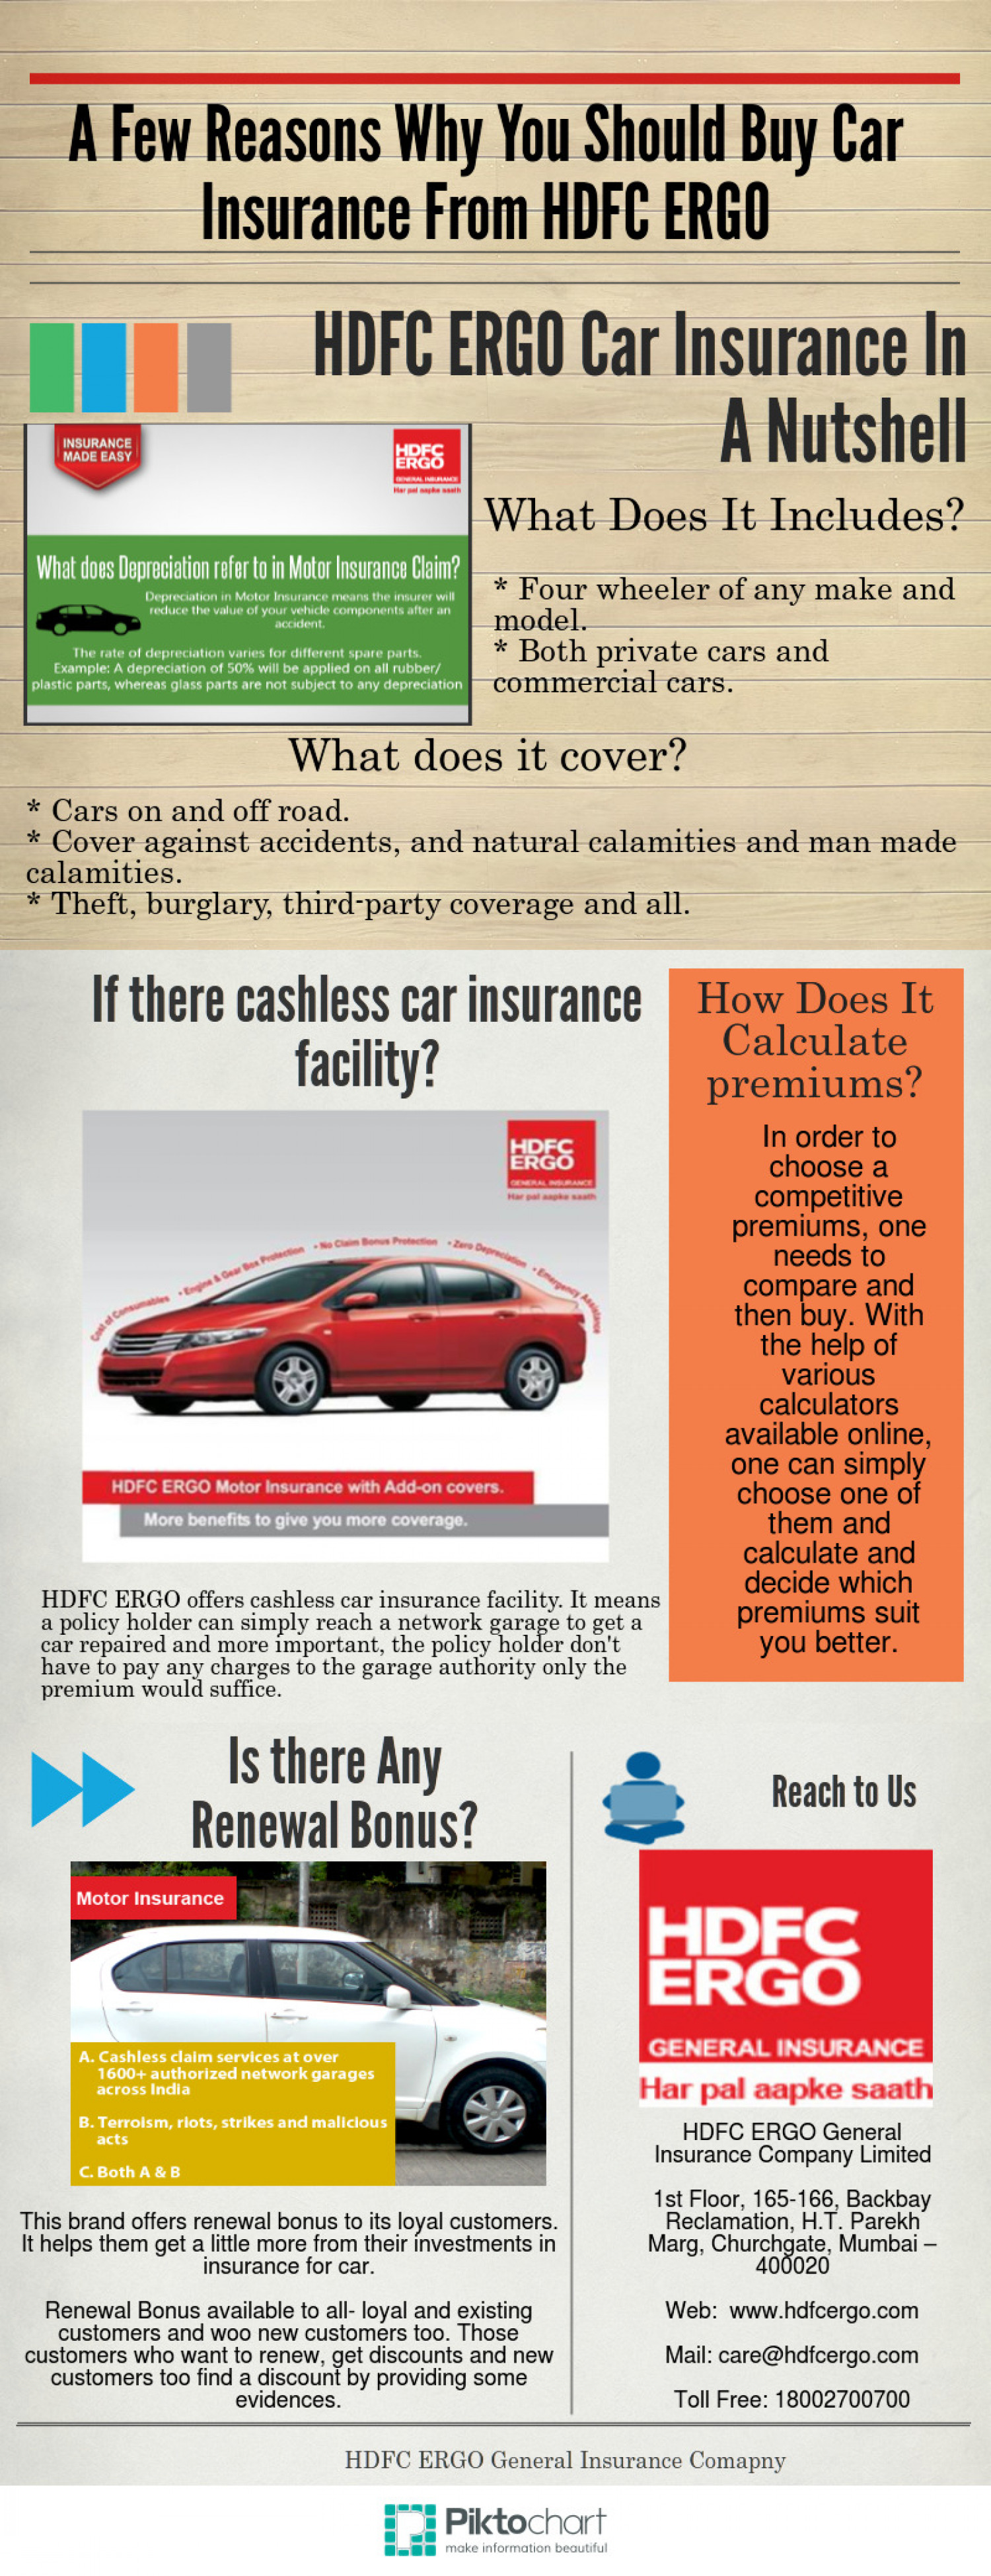 A Few Reasons Why You Should Buy Car Insurance From HDFC ERGO Infographic